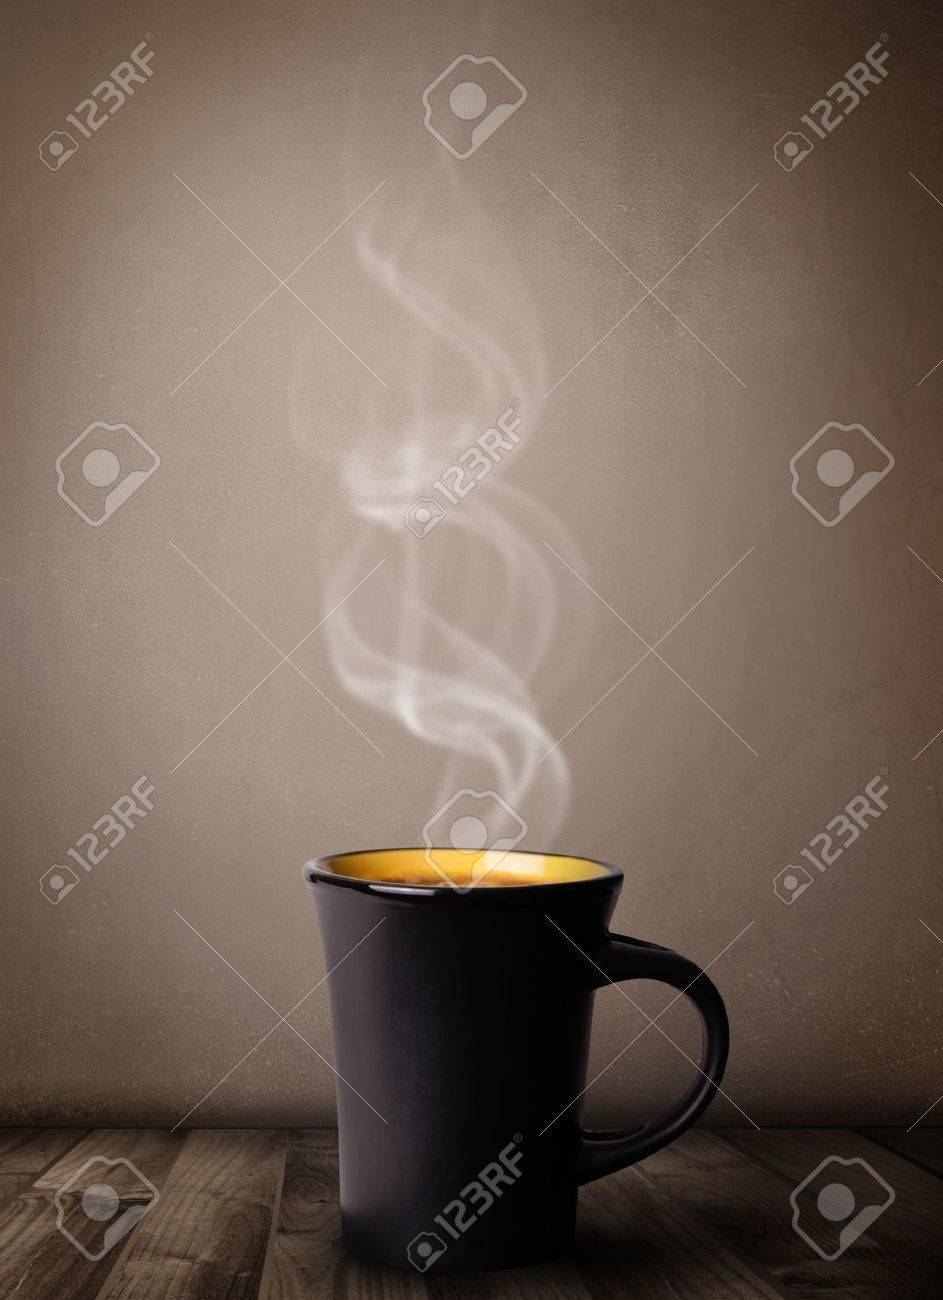 Coffee cup with abstract white steam, close up Stock Photo - 20661025